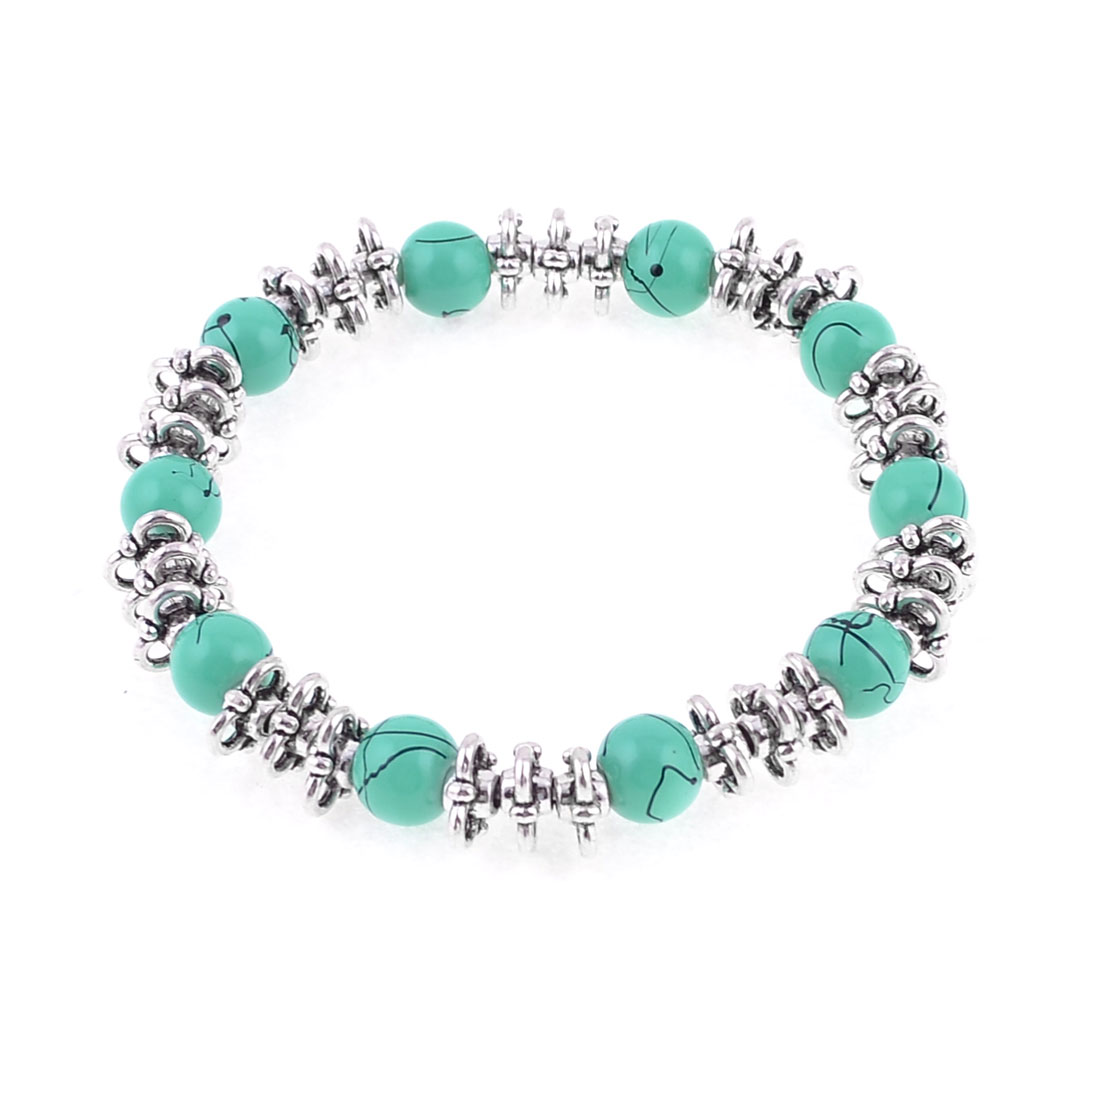 Ladies Cyan Beeds Connected Chinese Hand-woven National Wind Braclet Wrist